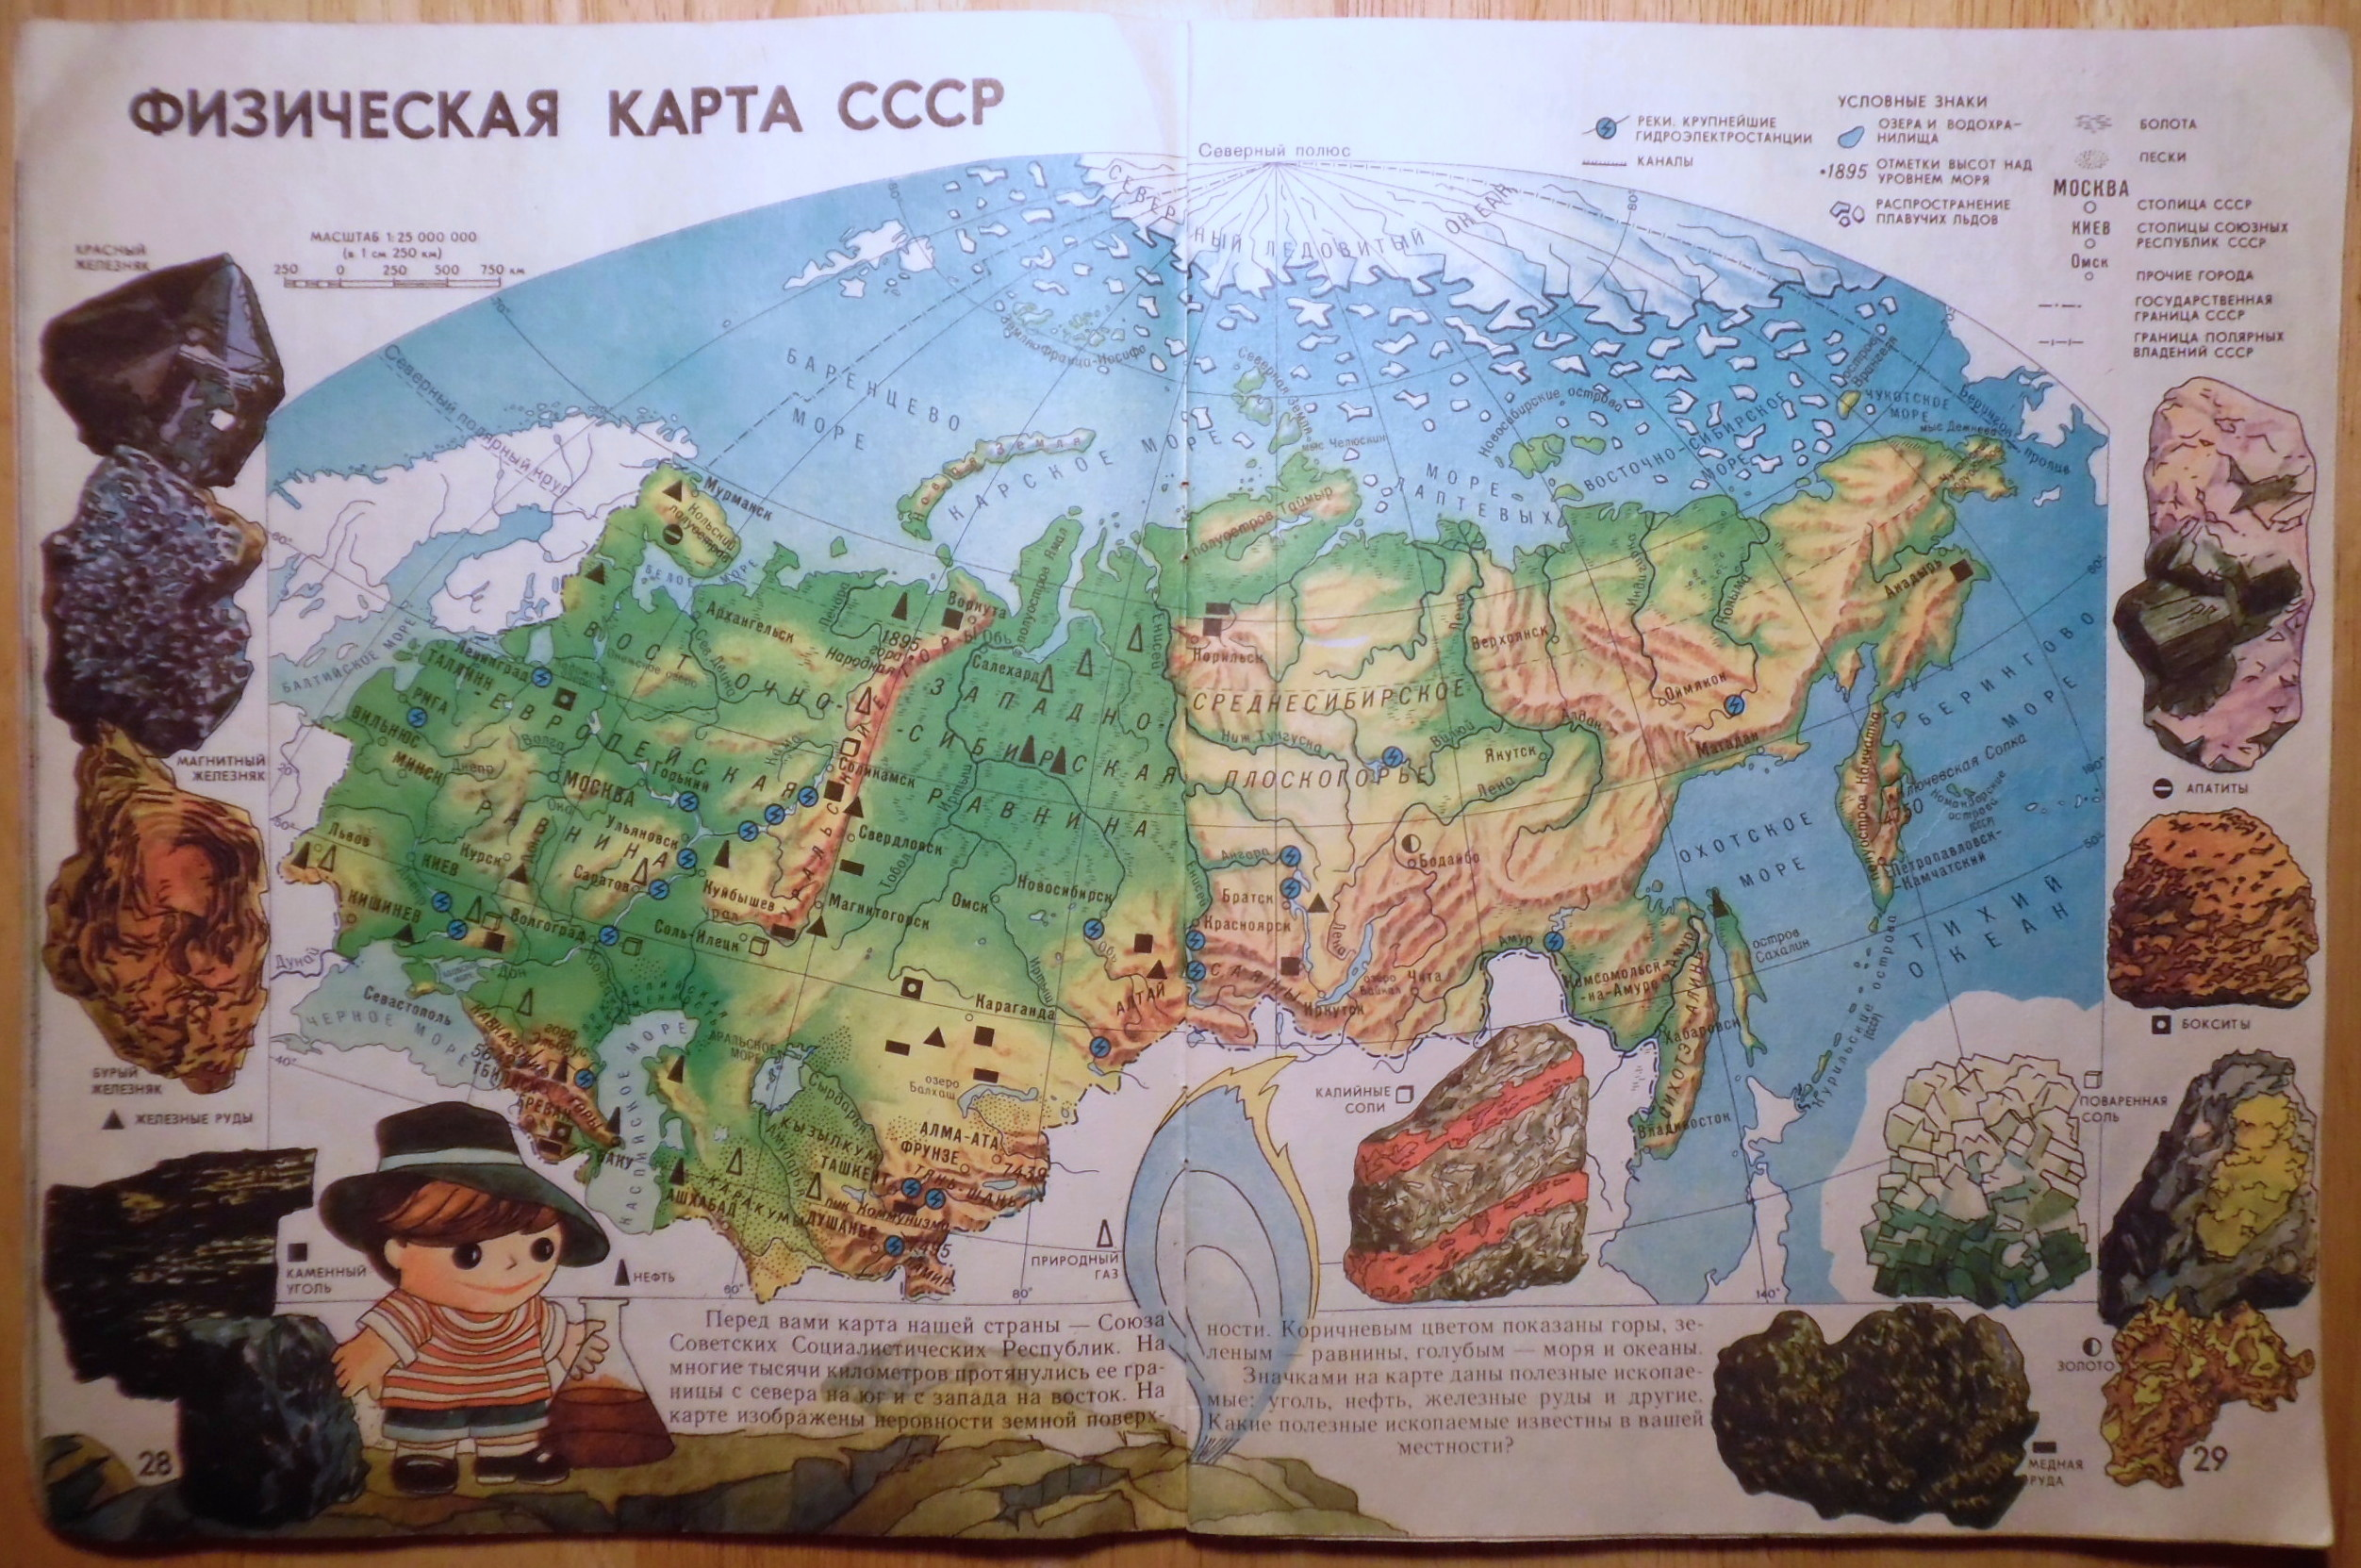 Physical Map of the USSR